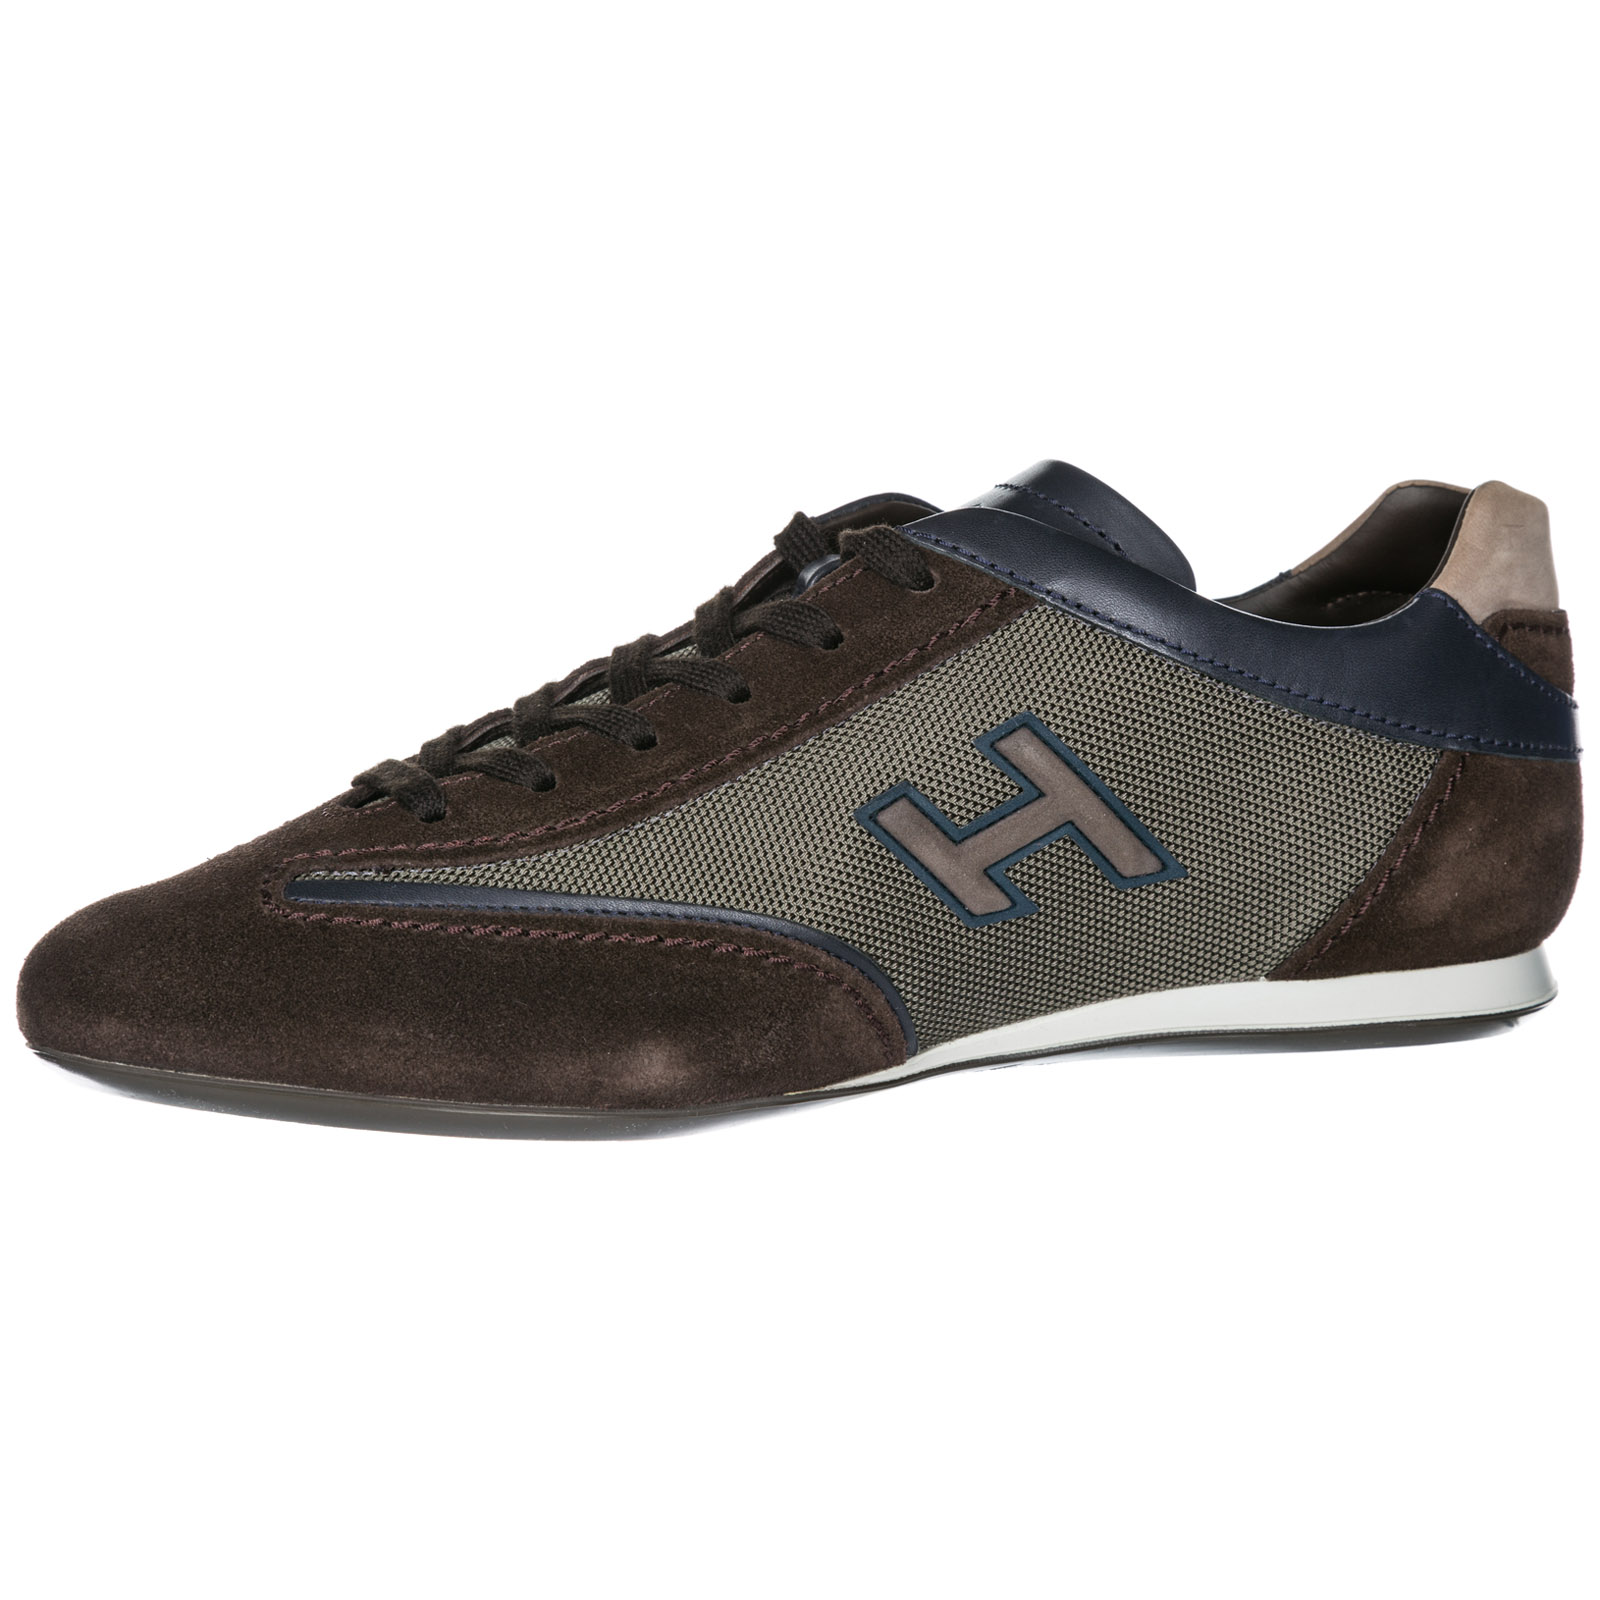 Men's shoes suede trainers sneakers olympia h flock